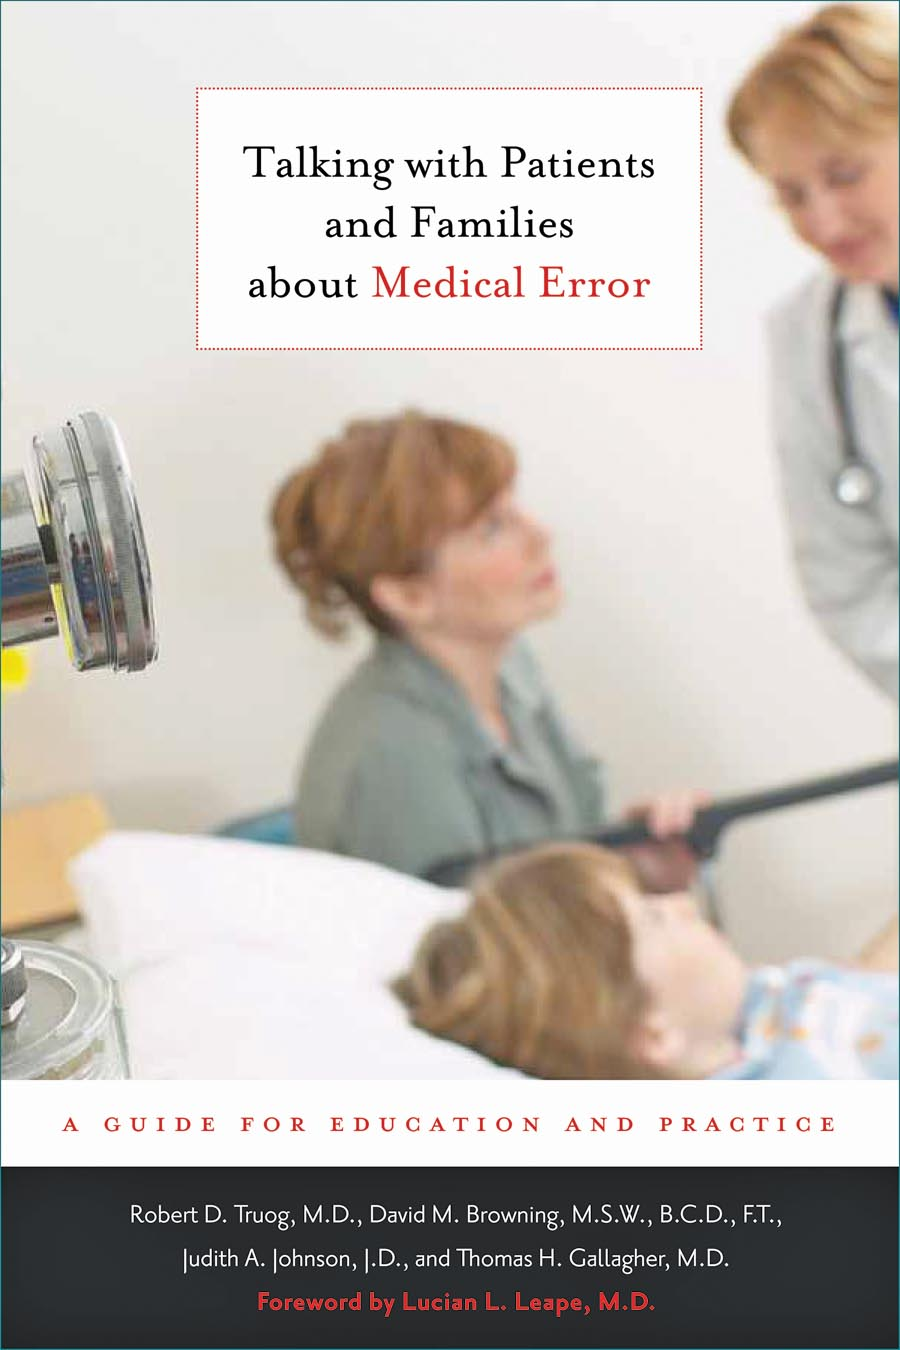 Talking with Patients and Families about Medical Error – A Guide for Education and Practice